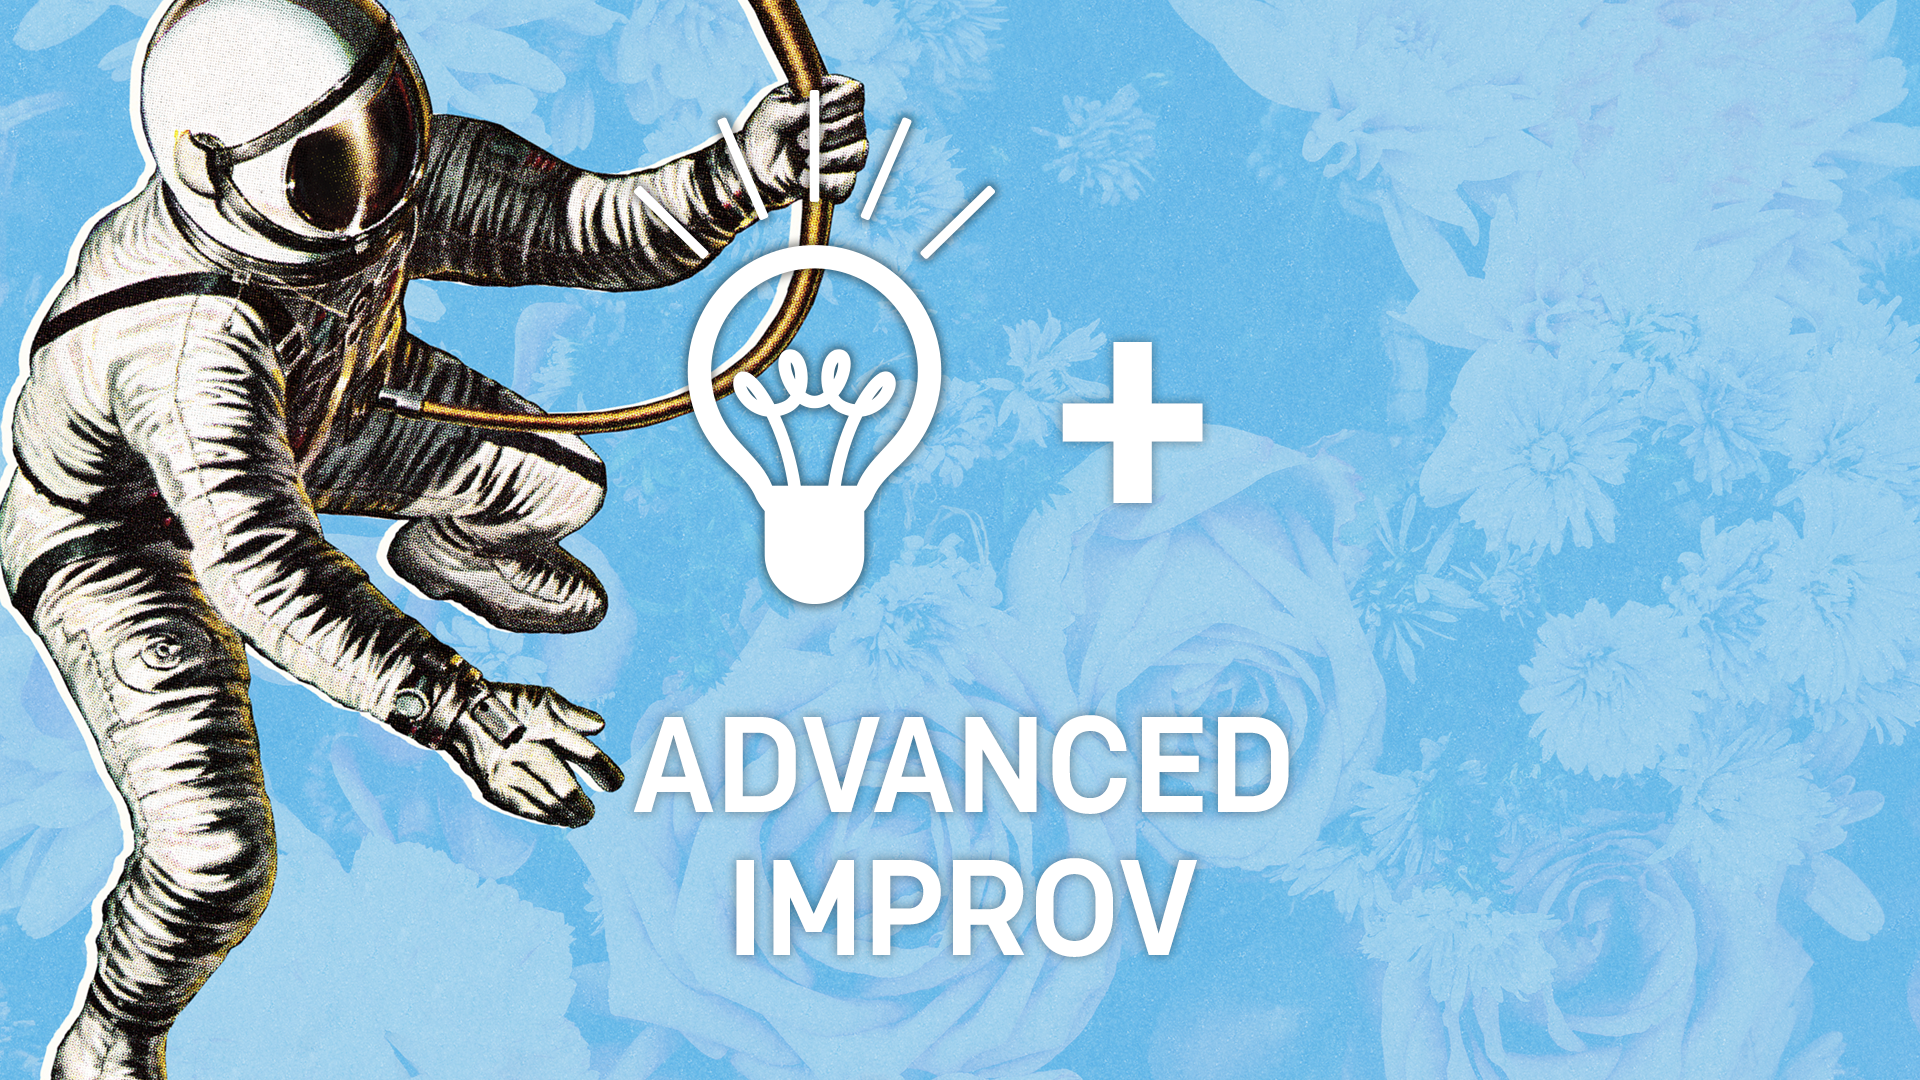 Advanced Improv Program